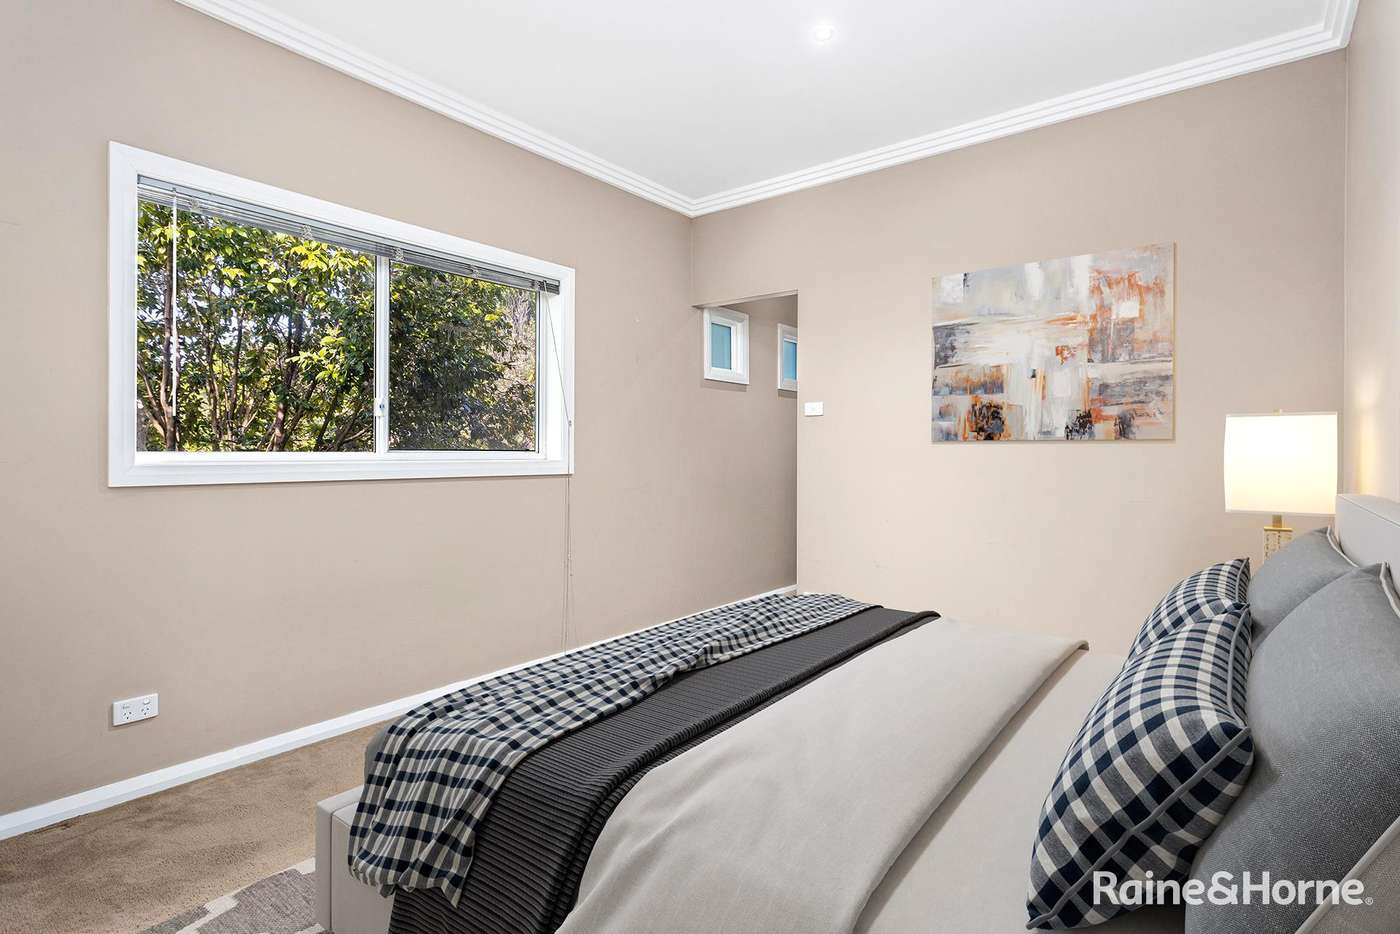 Sixth view of Homely house listing, 2 Ryan Avenue, Nowra NSW 2541